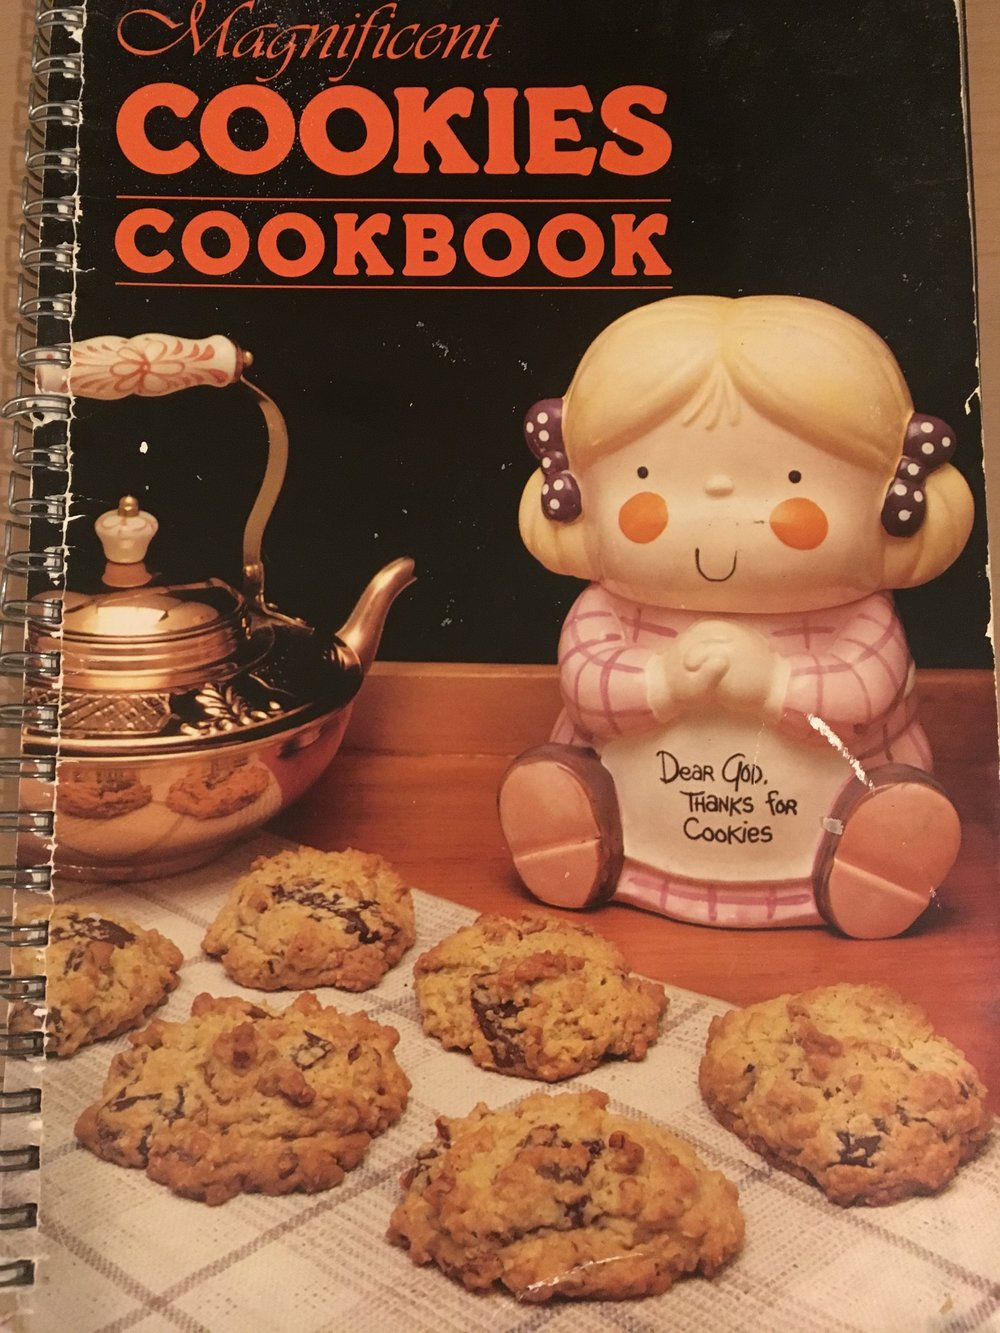 The Cookbook I have been using since I was a kid